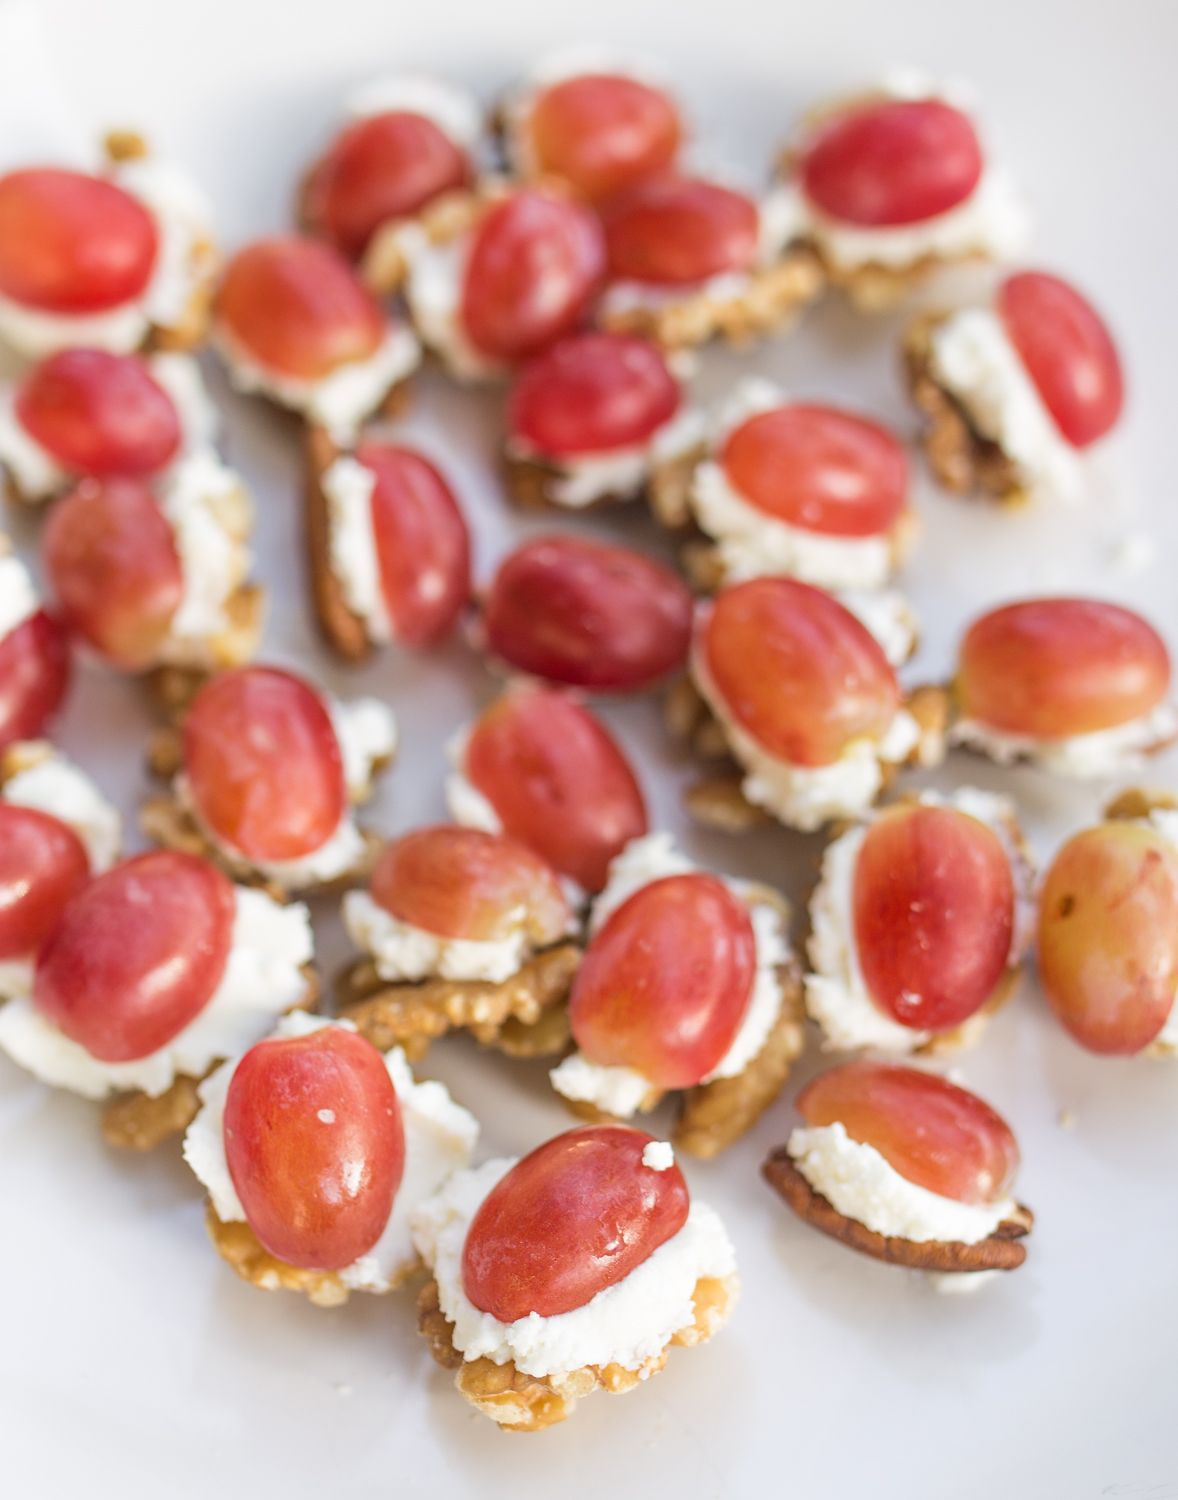 Easy party appetizer grapes goat cheese and nuts inspiredrd easy party appetizer grapes goat cheese and nuts inspiredrd recipe forumfinder Images